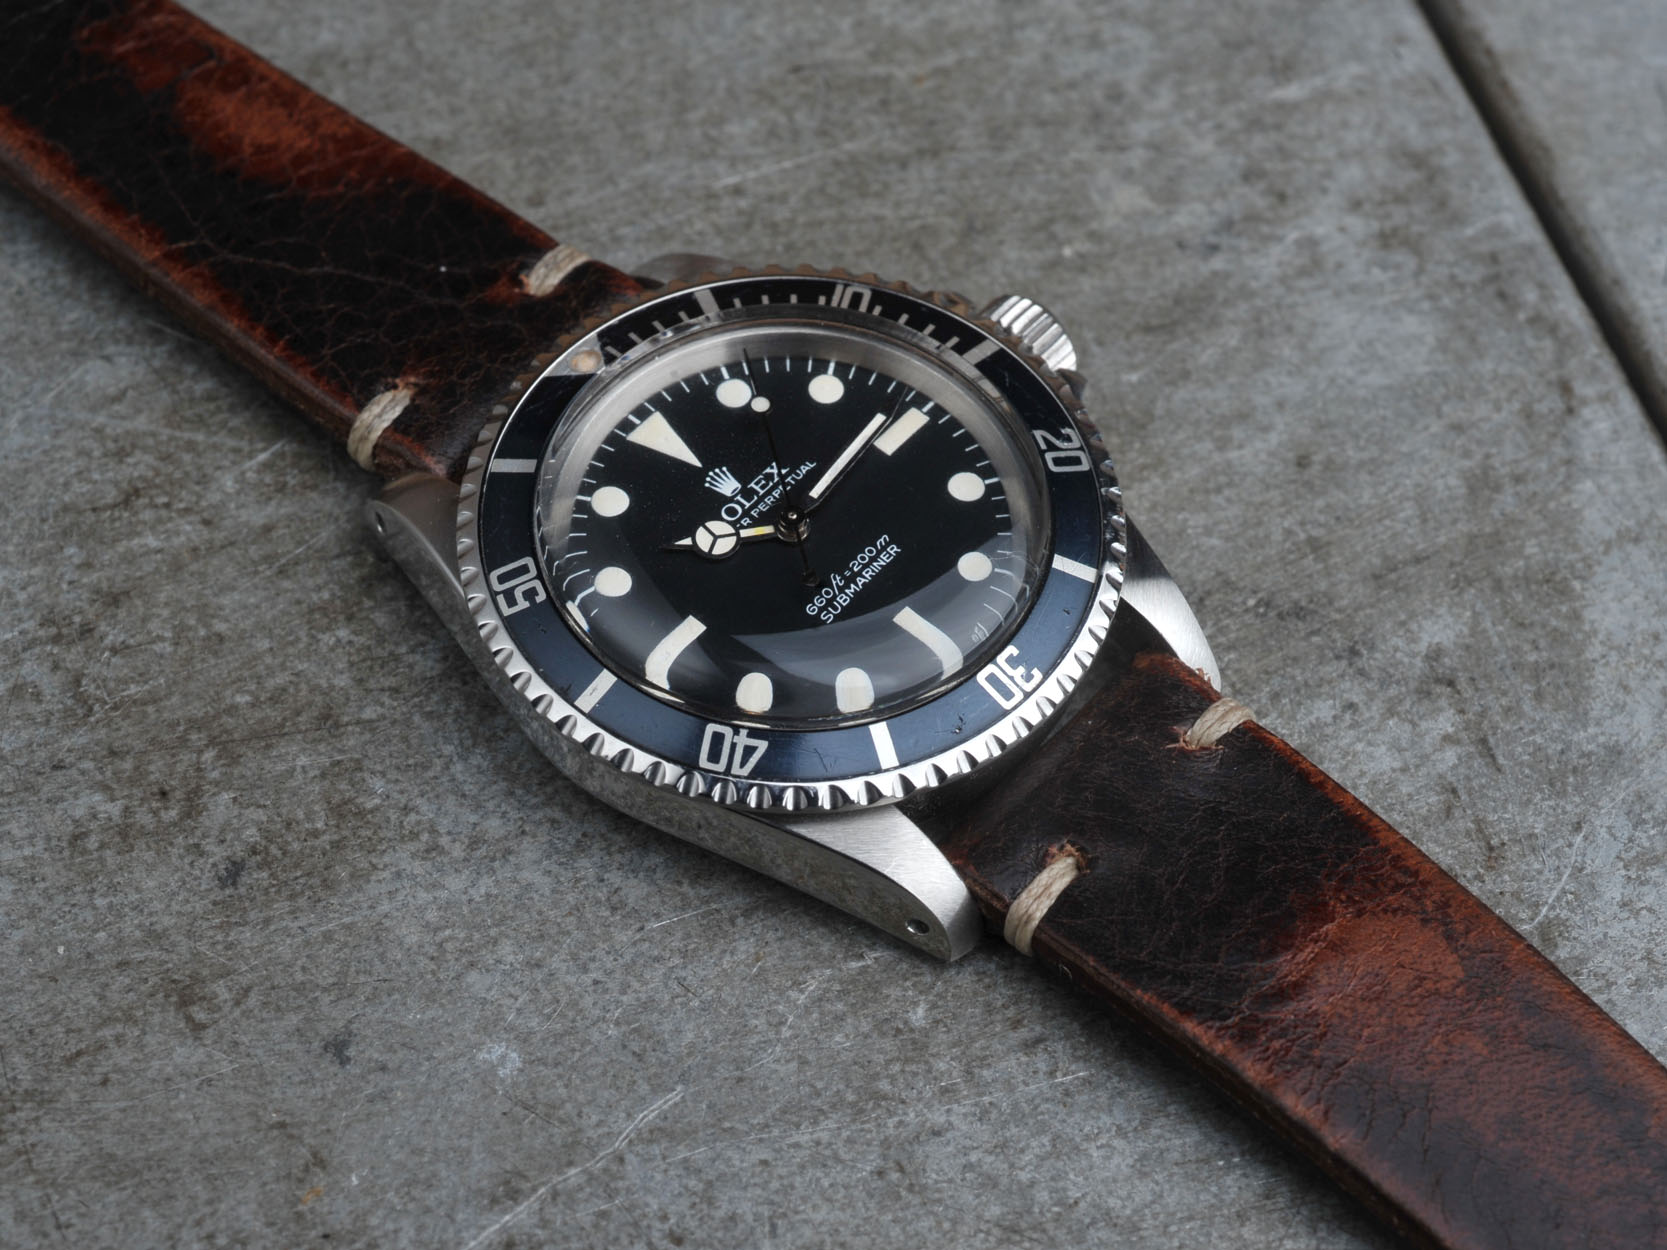 Rolex 5513 Submariner Sold Bulang And Sons